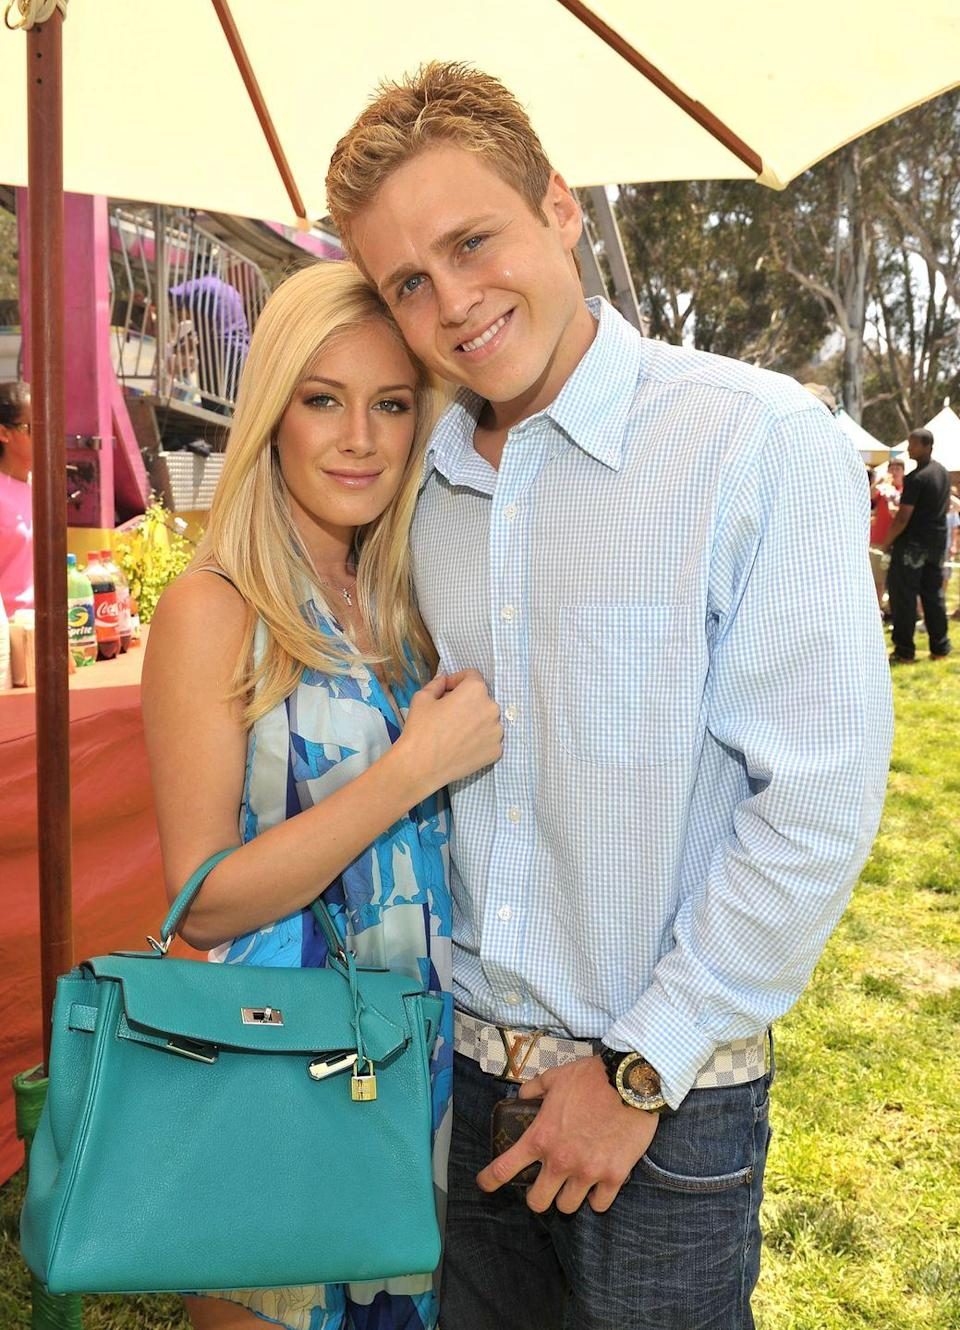 "<p>It was the relationship that took down everyone's favorite <em>The Hills</em> friendship, while serving up so much drama. When Heidi Montag chose her new boyfriend over BFF and costar Lauren Conrad, she moved out of Hillside Villas and <a href=""https://twitter.com/lauurelizabethh/status/1156245206406246400"" rel=""nofollow noopener"" target=""_blank"" data-ylk=""slk:fans have loved to hate Speidi ever since"" class=""link rapid-noclick-resp"">fans have loved to hate Speidi ever since</a>. As for LC? She taught us all a <a href=""https://www.youtube.com/watch?v=FqrcLcpHyG4&list=PLl4S9Rb1sn74Ueda7bT6iiwAih24xnv9E&index=20&t=0s&app=desktop"" rel=""nofollow noopener"" target=""_blank"" data-ylk=""slk:valuable lesson on forgiveness"" class=""link rapid-noclick-resp"">valuable lesson on forgiveness</a>.</p>"